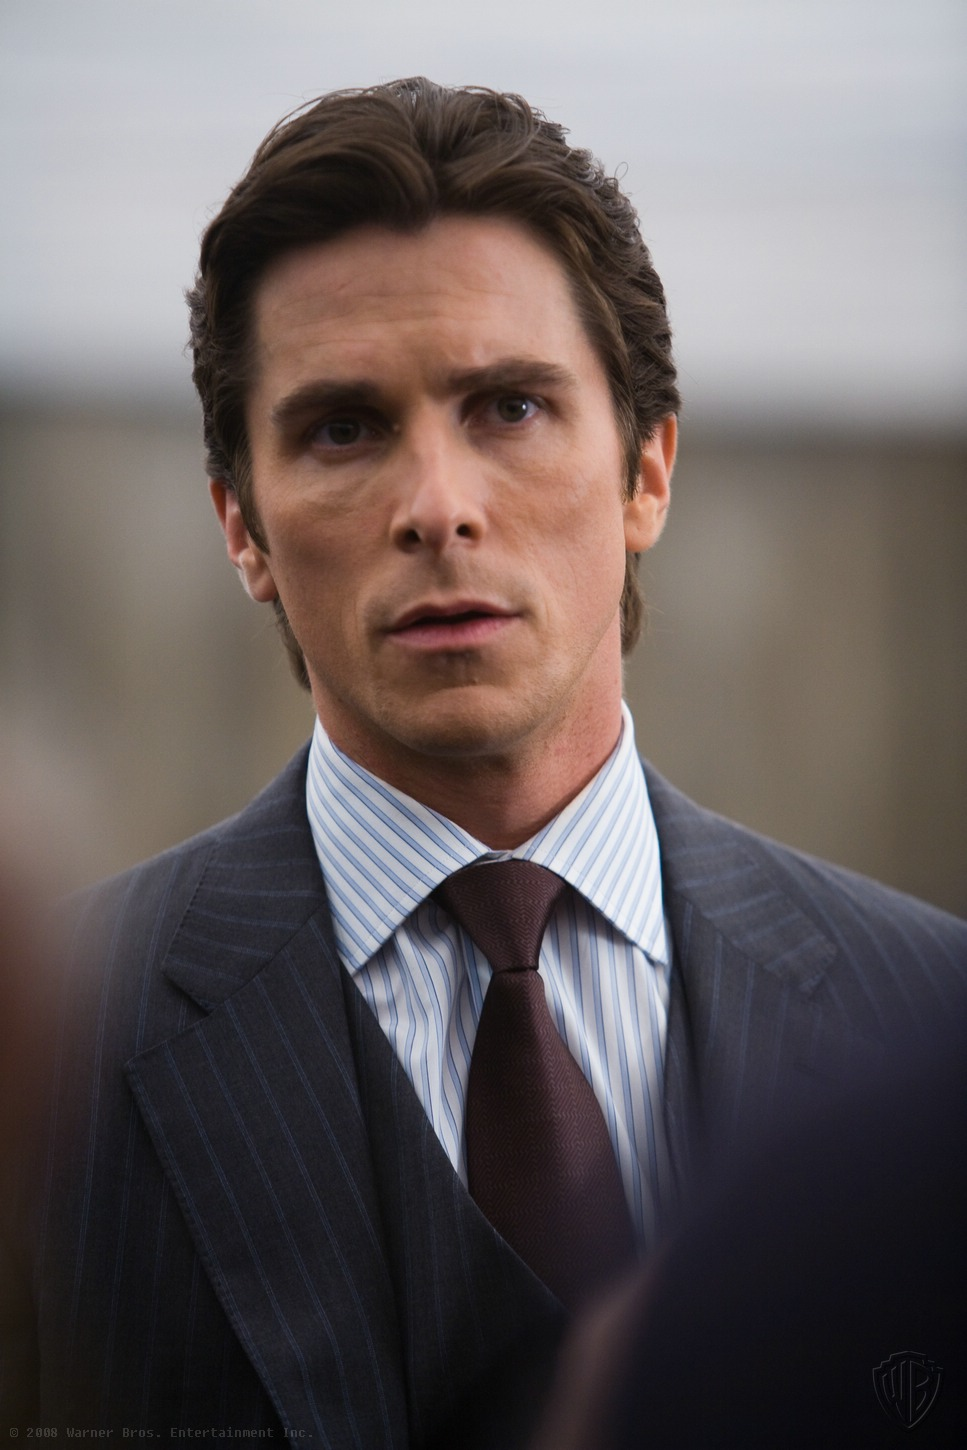 Bruce Wayne images Bruce Wayne HD wallpaper and background ... Christian Bale